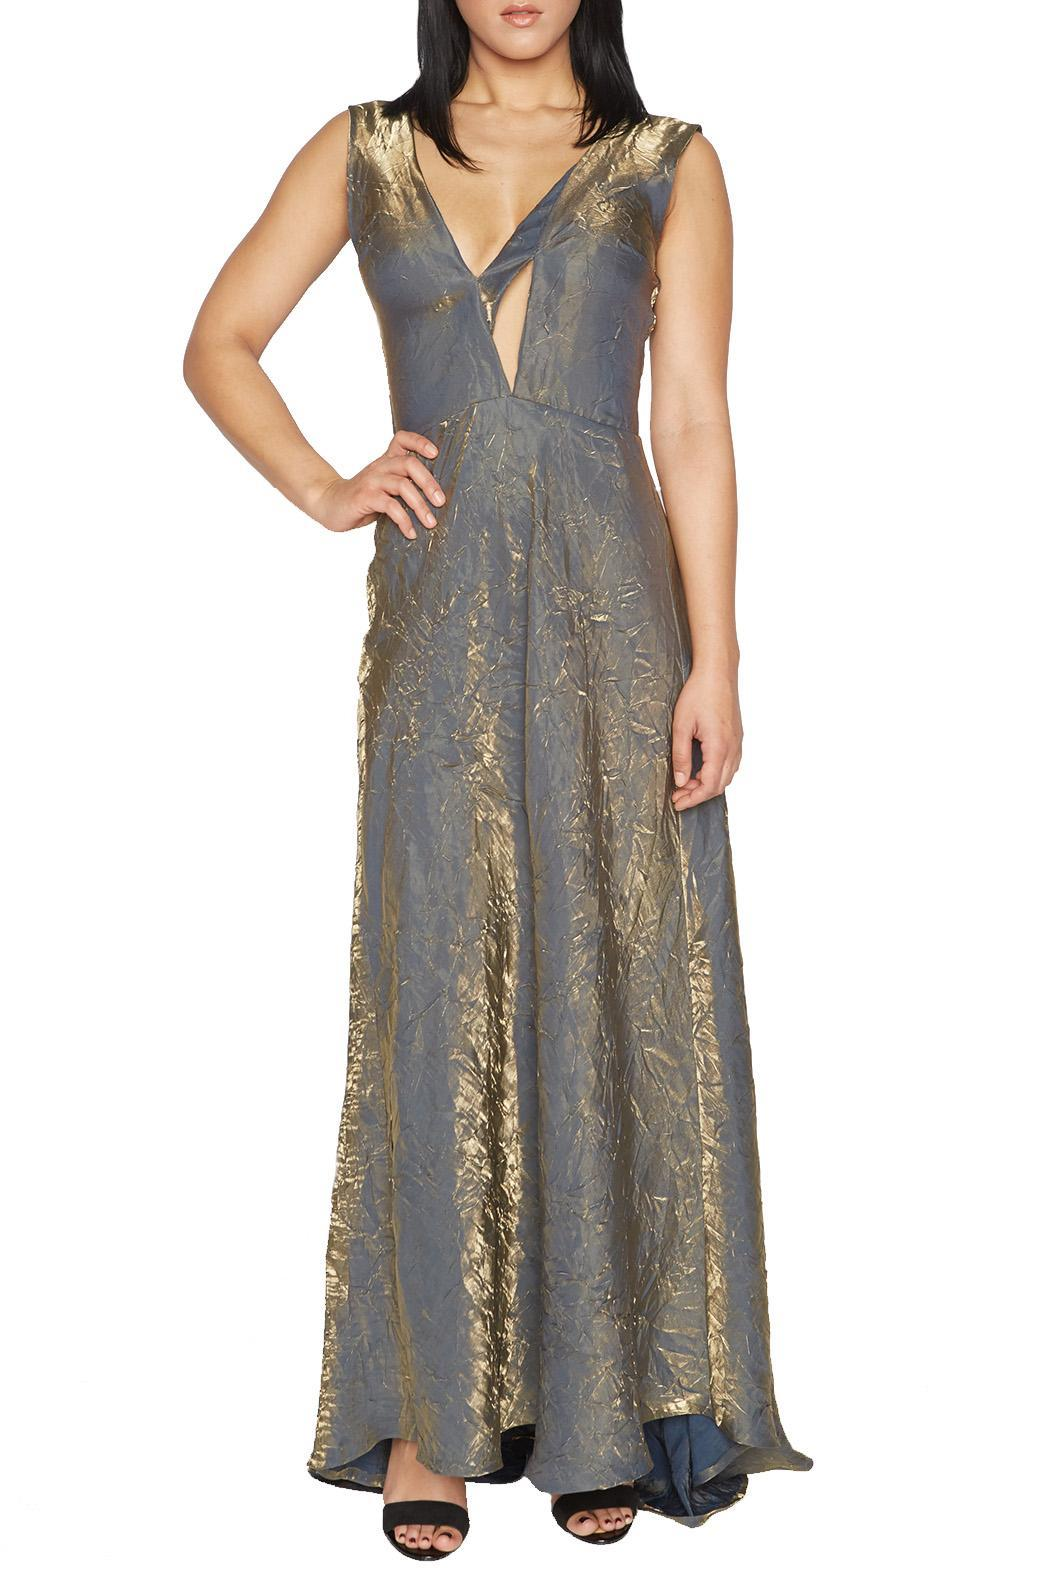 OHLENDORF atelier Gold Formal Gown from Portland — Shoptiques